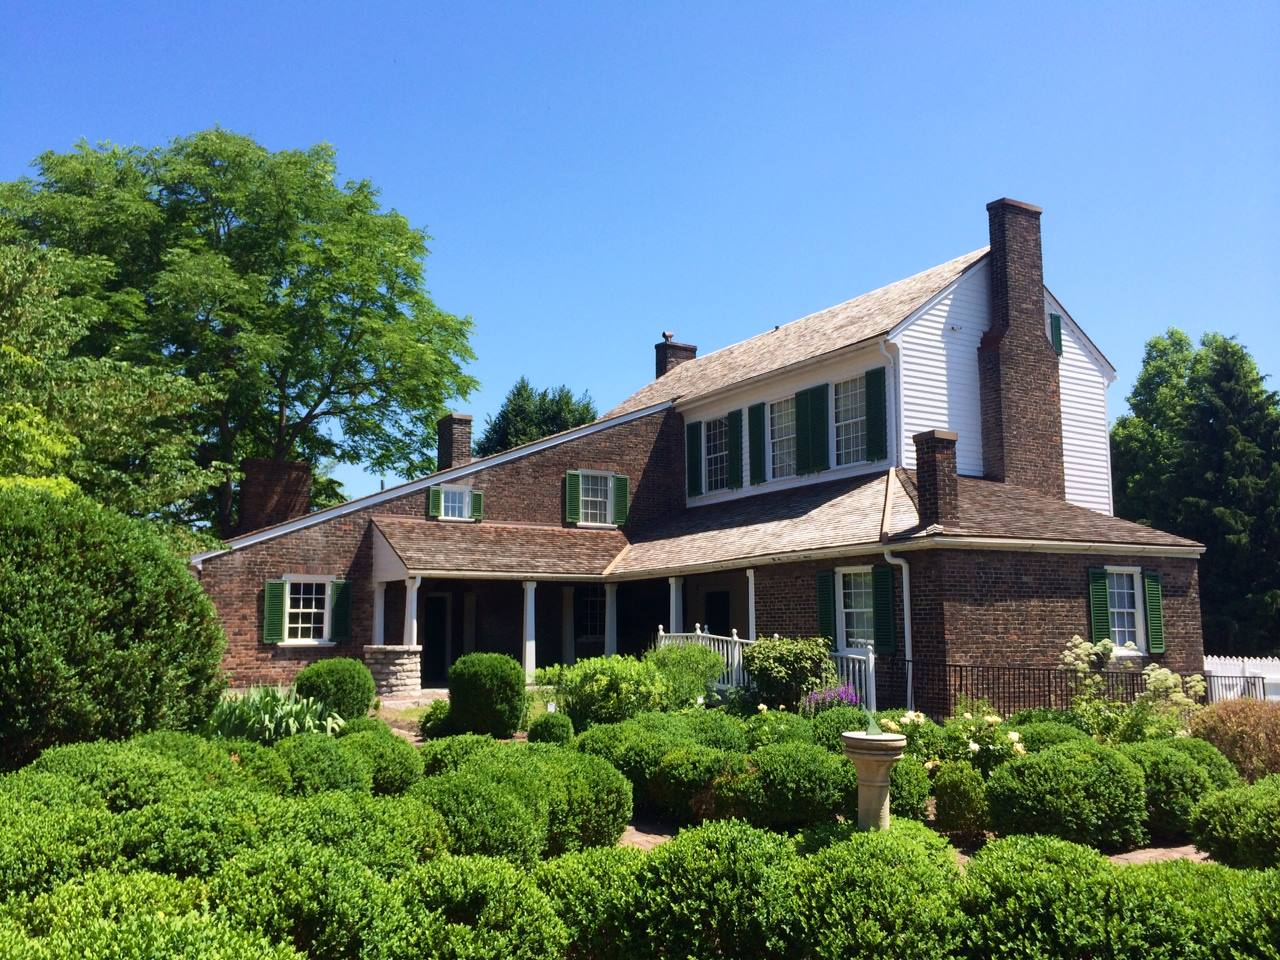 McDowell House - Museum, Apothecary and Gardens - Danville, KY